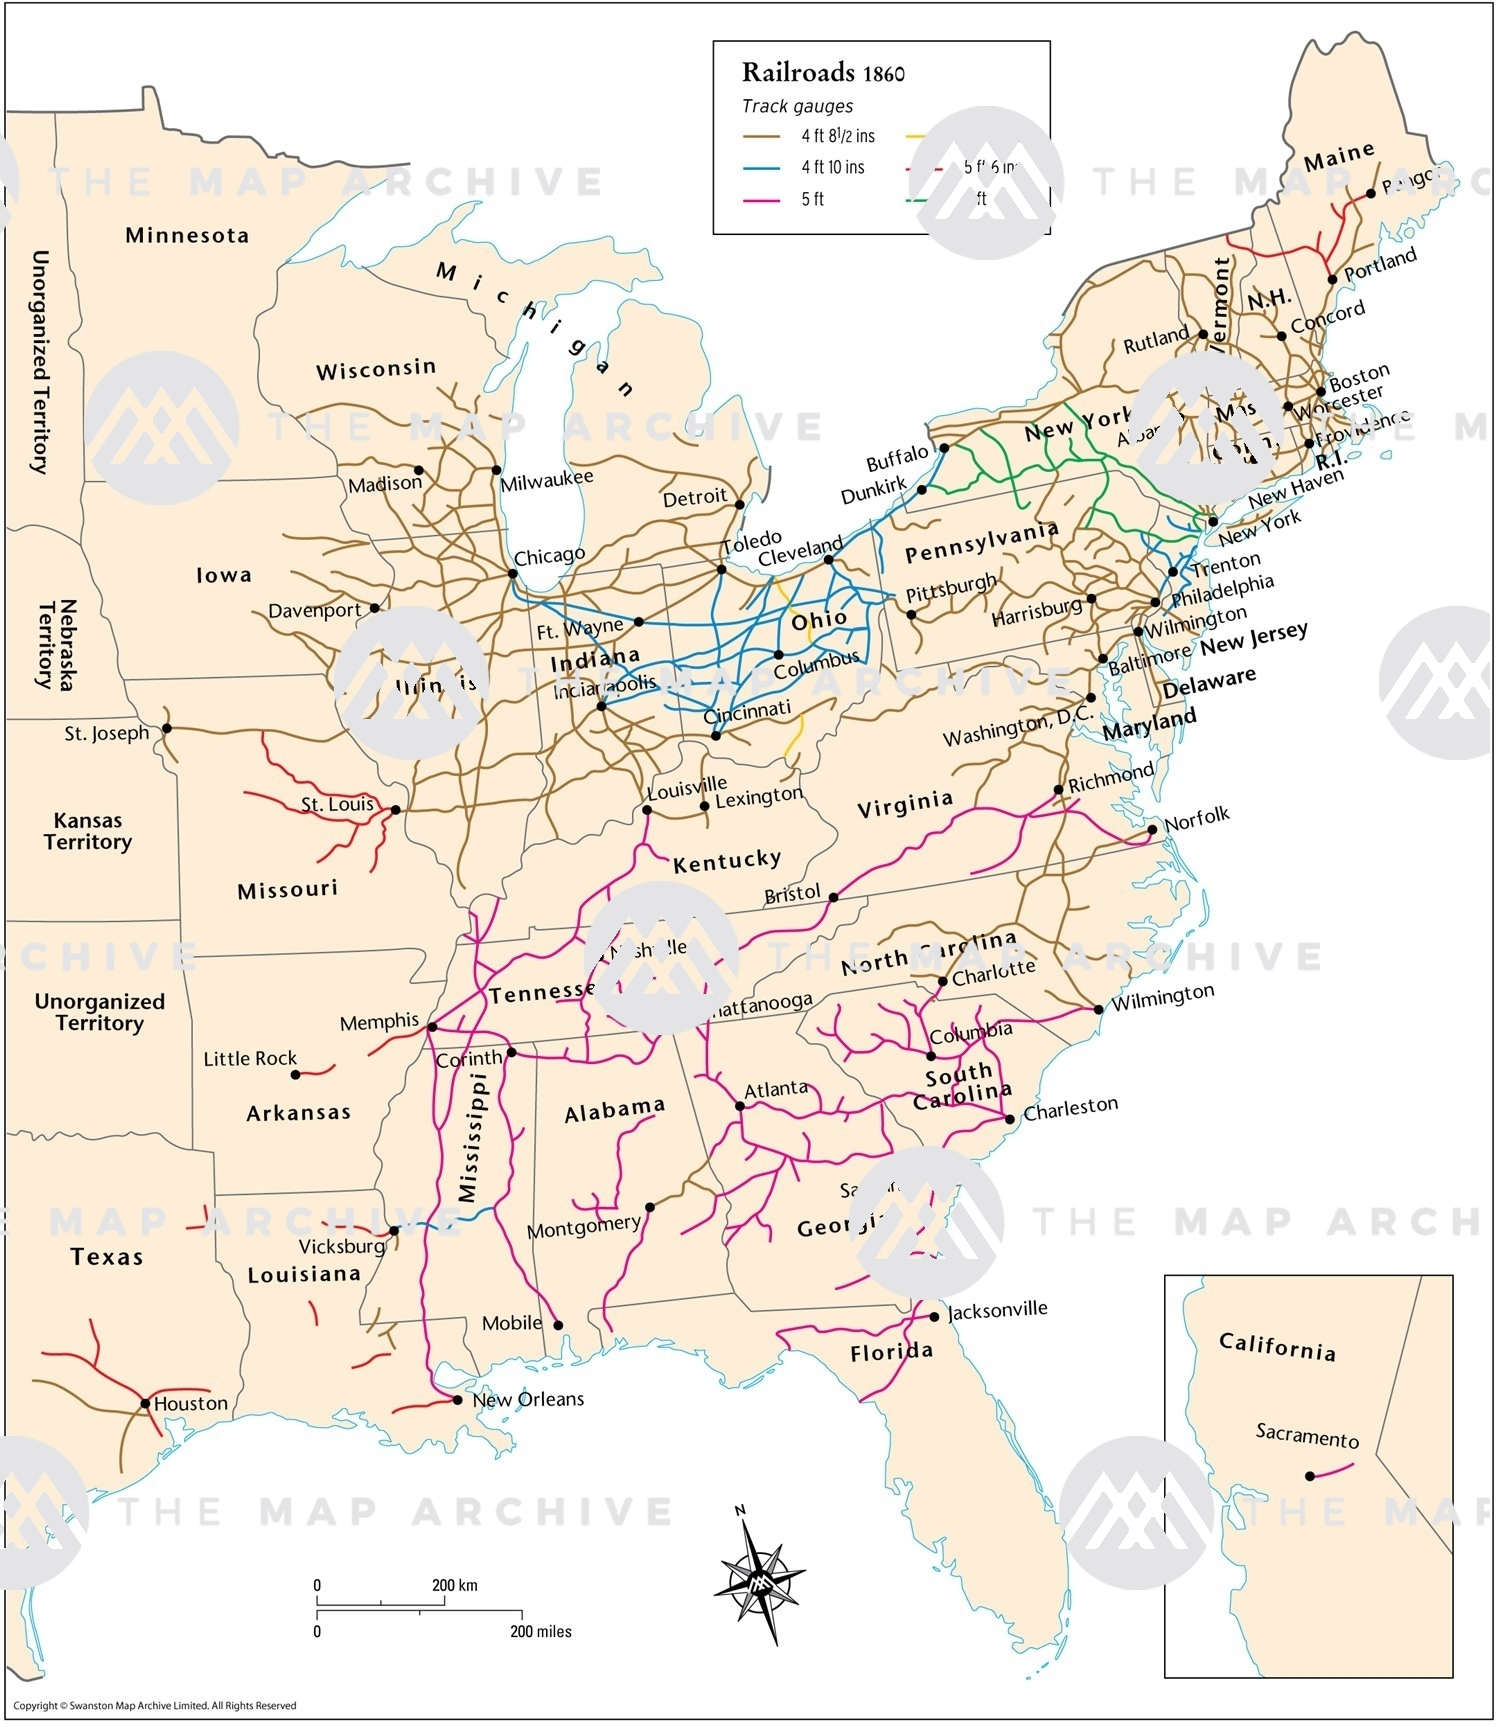 Map Of Us In 1860 1860 US Railroads